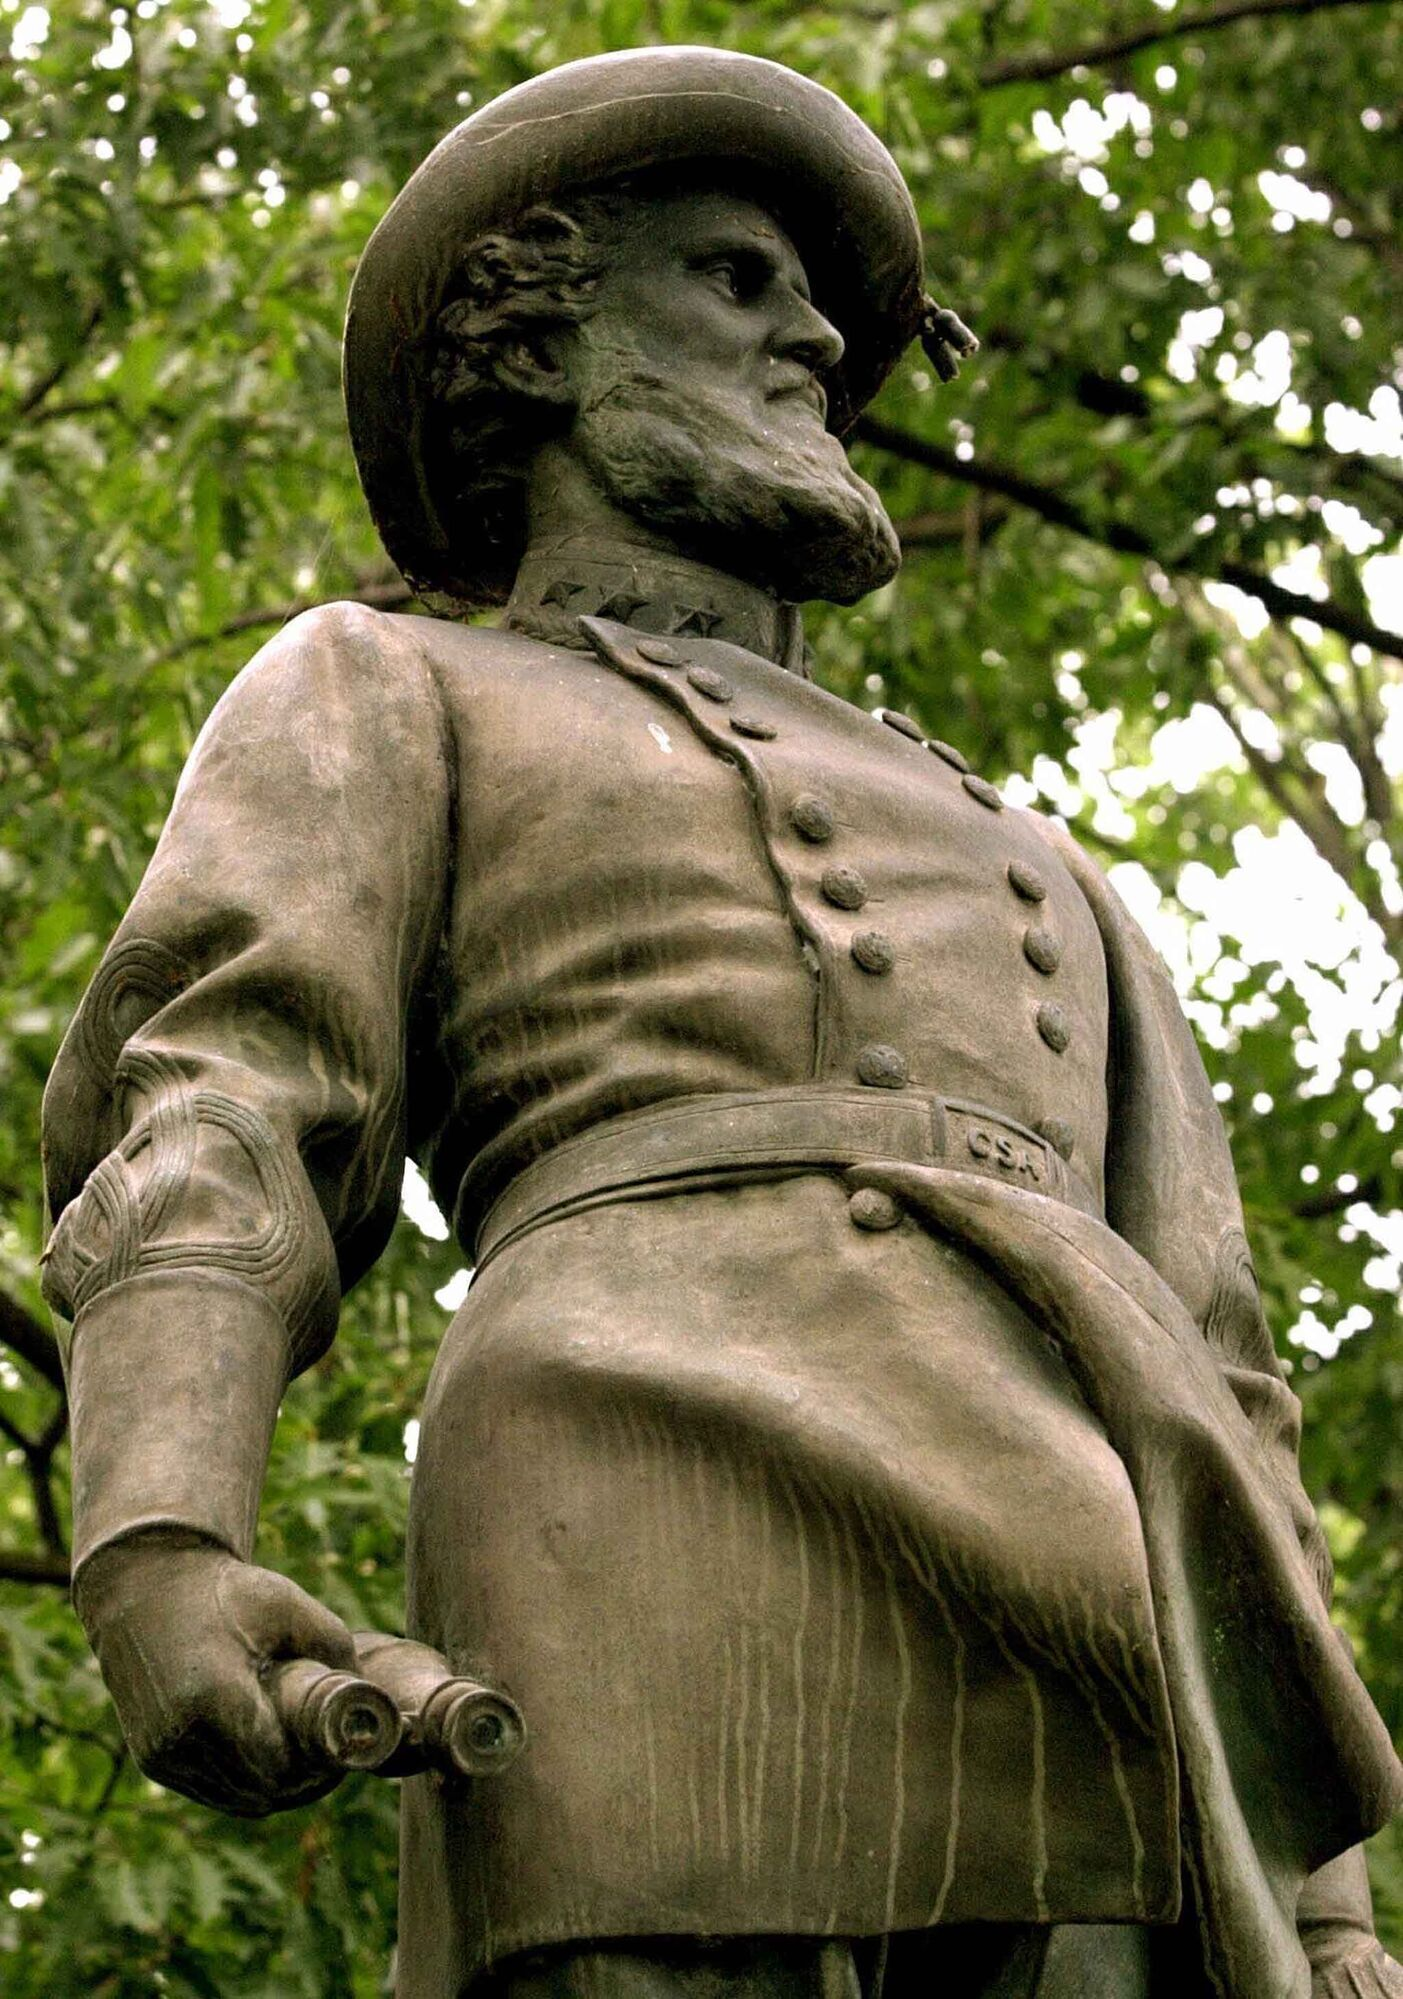 The military exploits of Confederate generals such as Stonewall Jackson serve as a cornerstone of the Lost Cause Myth.